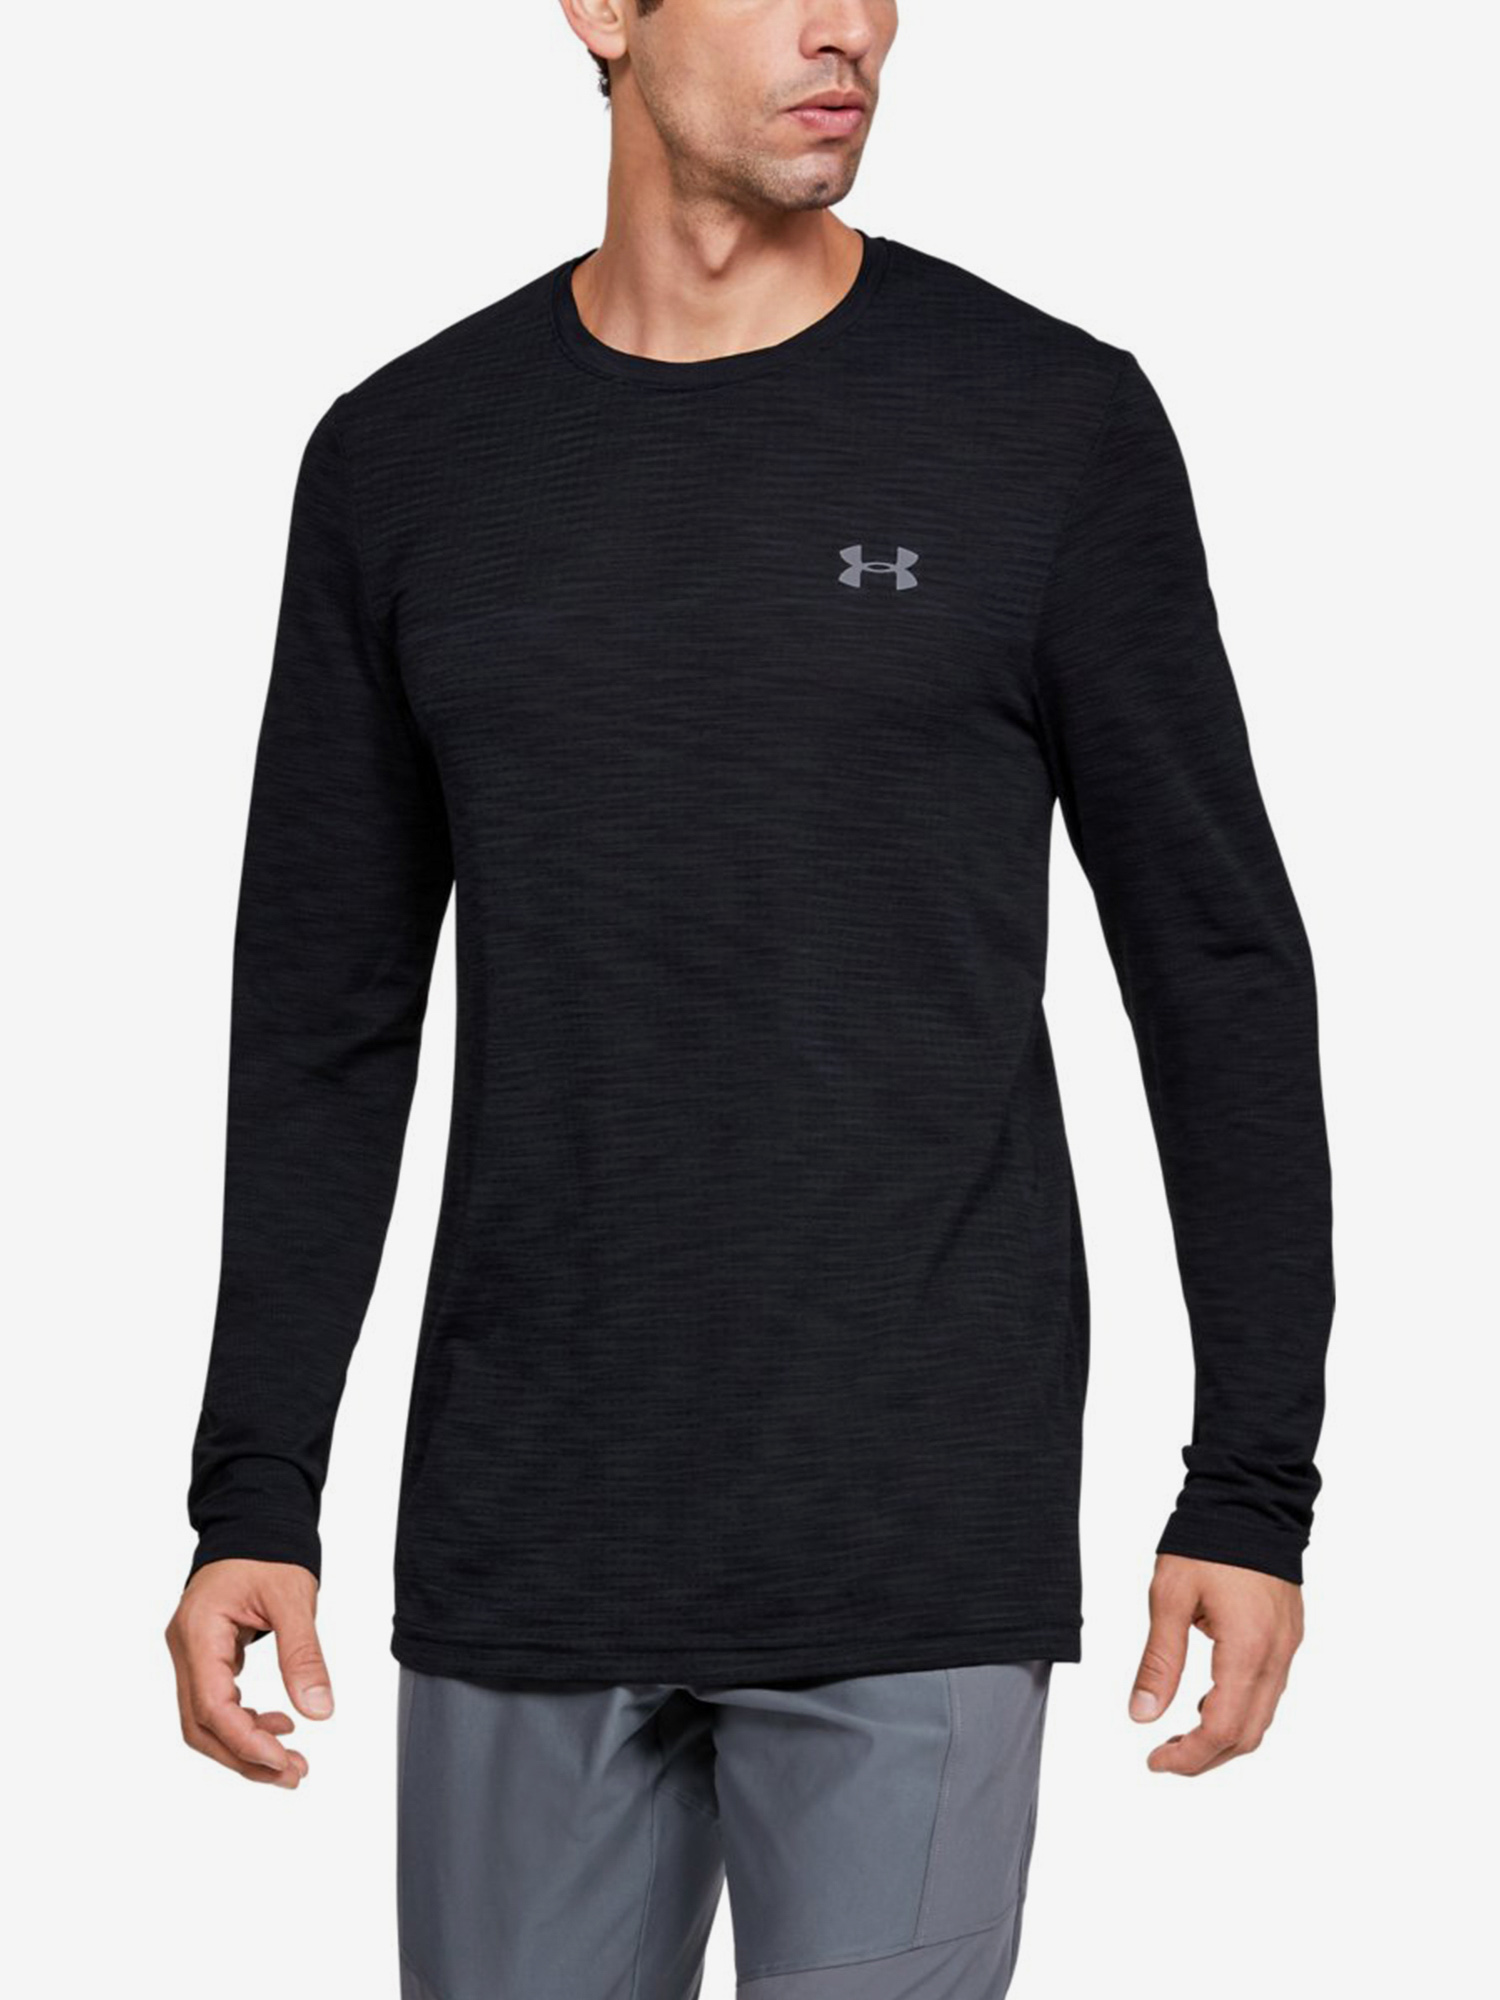 Tričko Under Armour Vanish Seamless Ls Nov 1-Blk Barevná